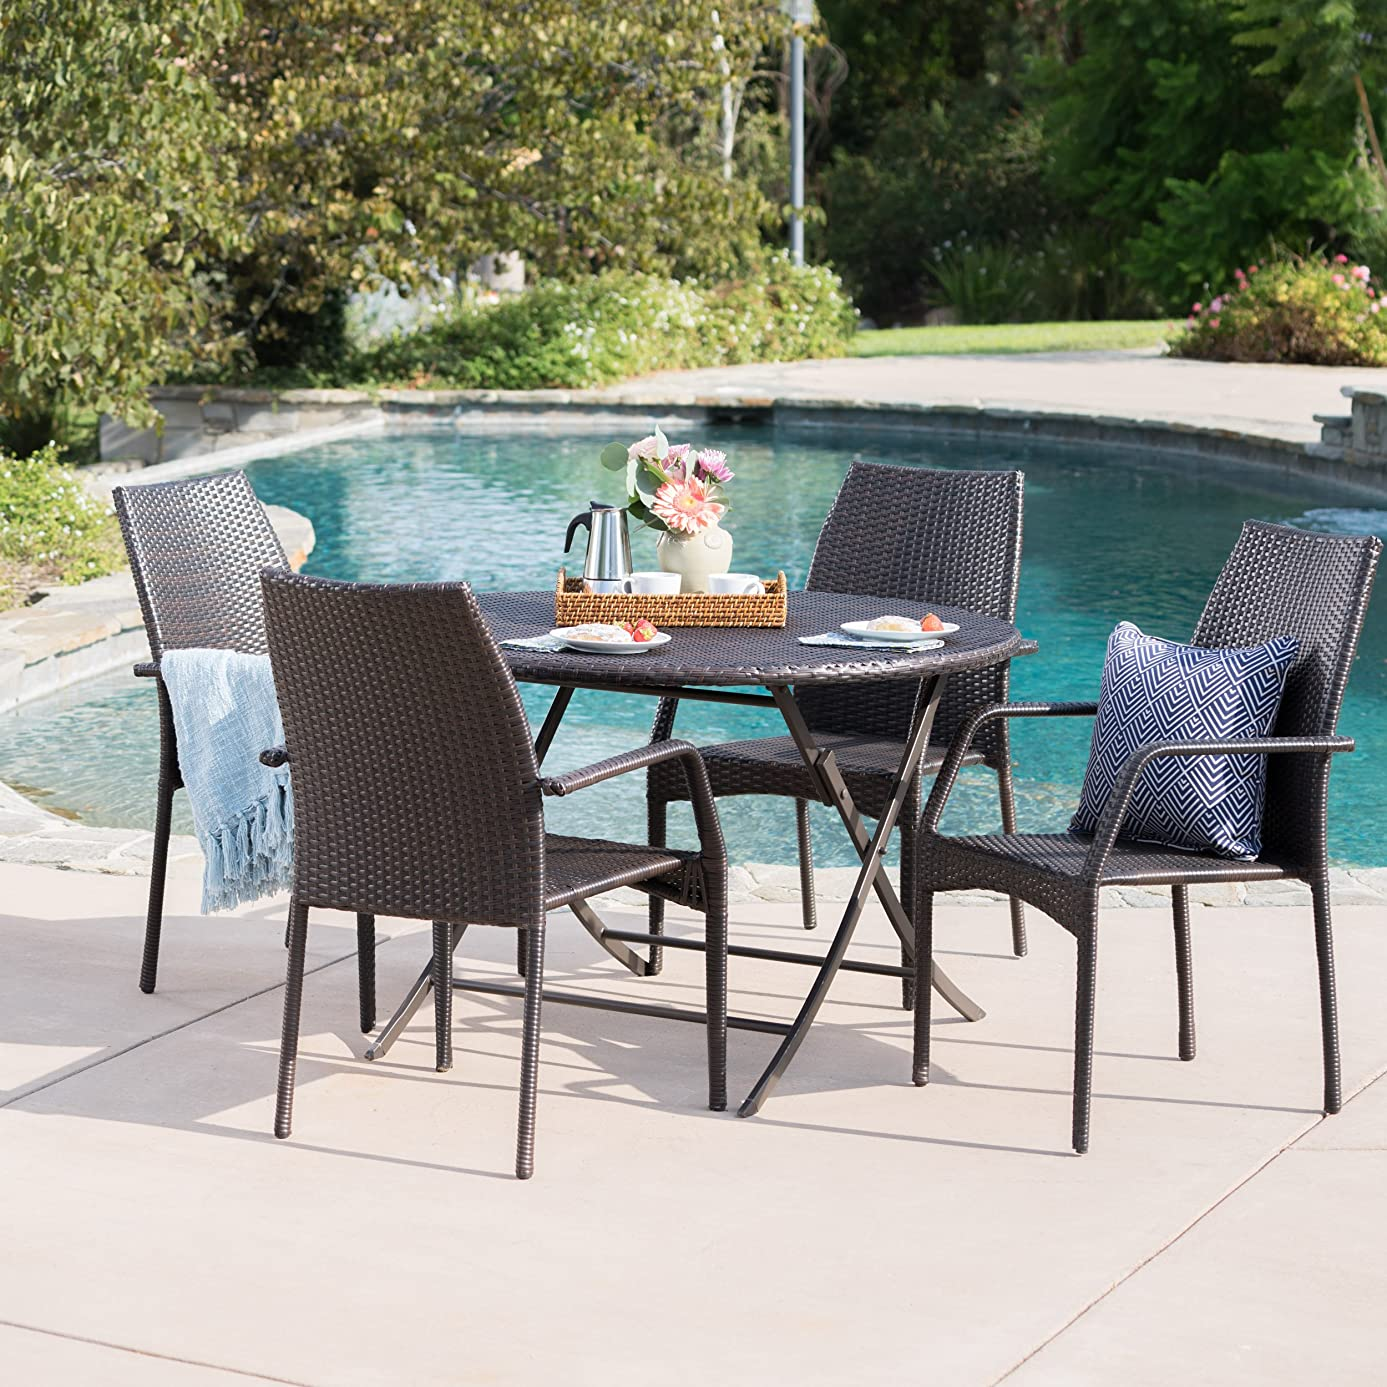 Knightley Outdoor 5 Piece Multi-Brown Wicker Dining Set with Foldable Table and Stacking Chairs